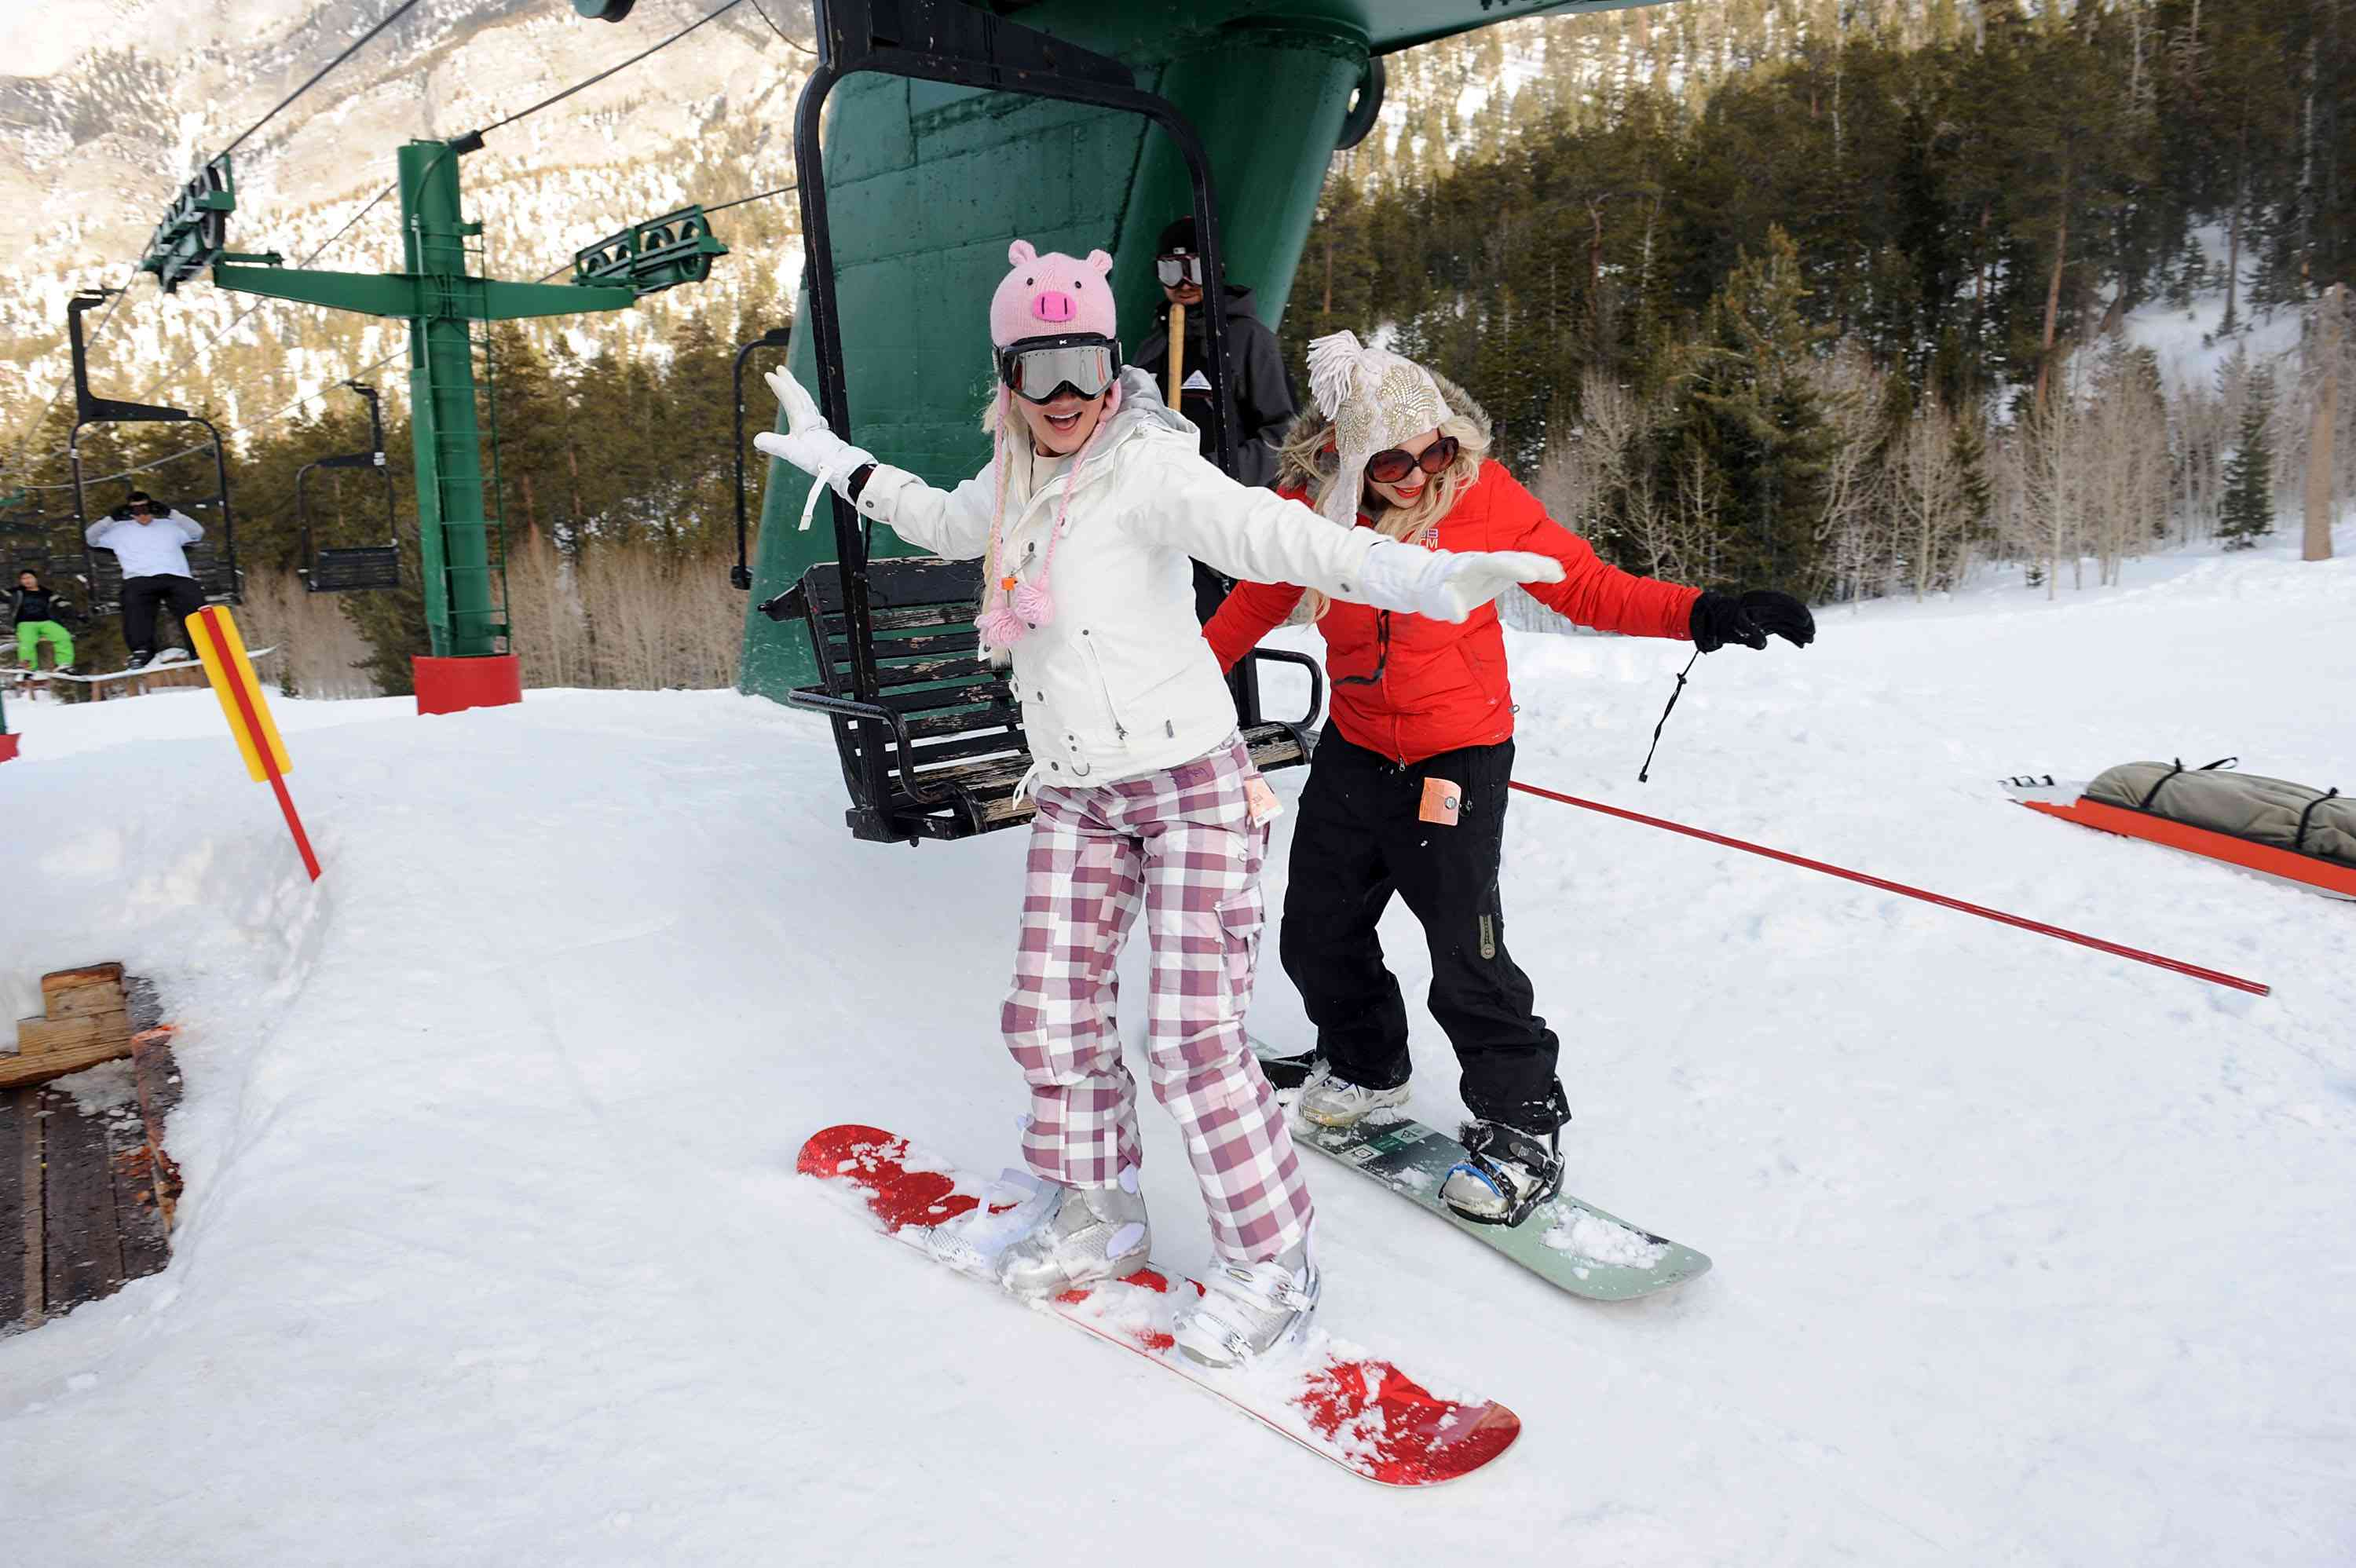 Snowboarders getting off lift at Lee Canyon